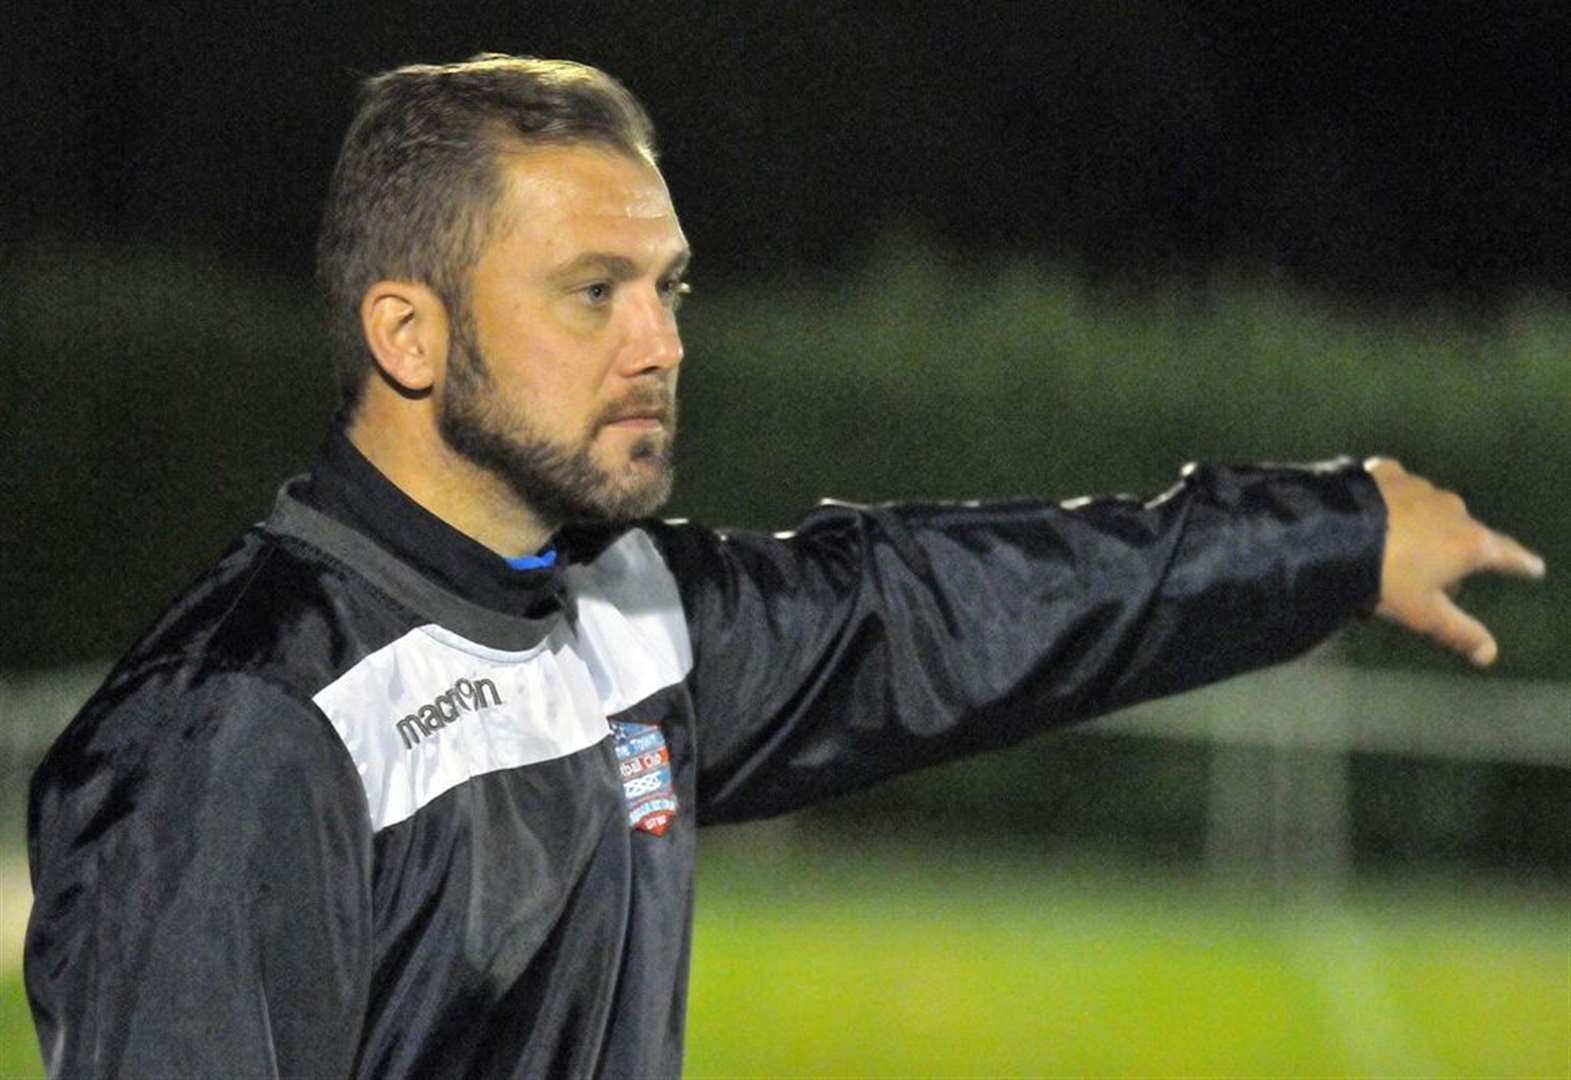 FOOTBALL: Positives for Wakes boss in deadlock